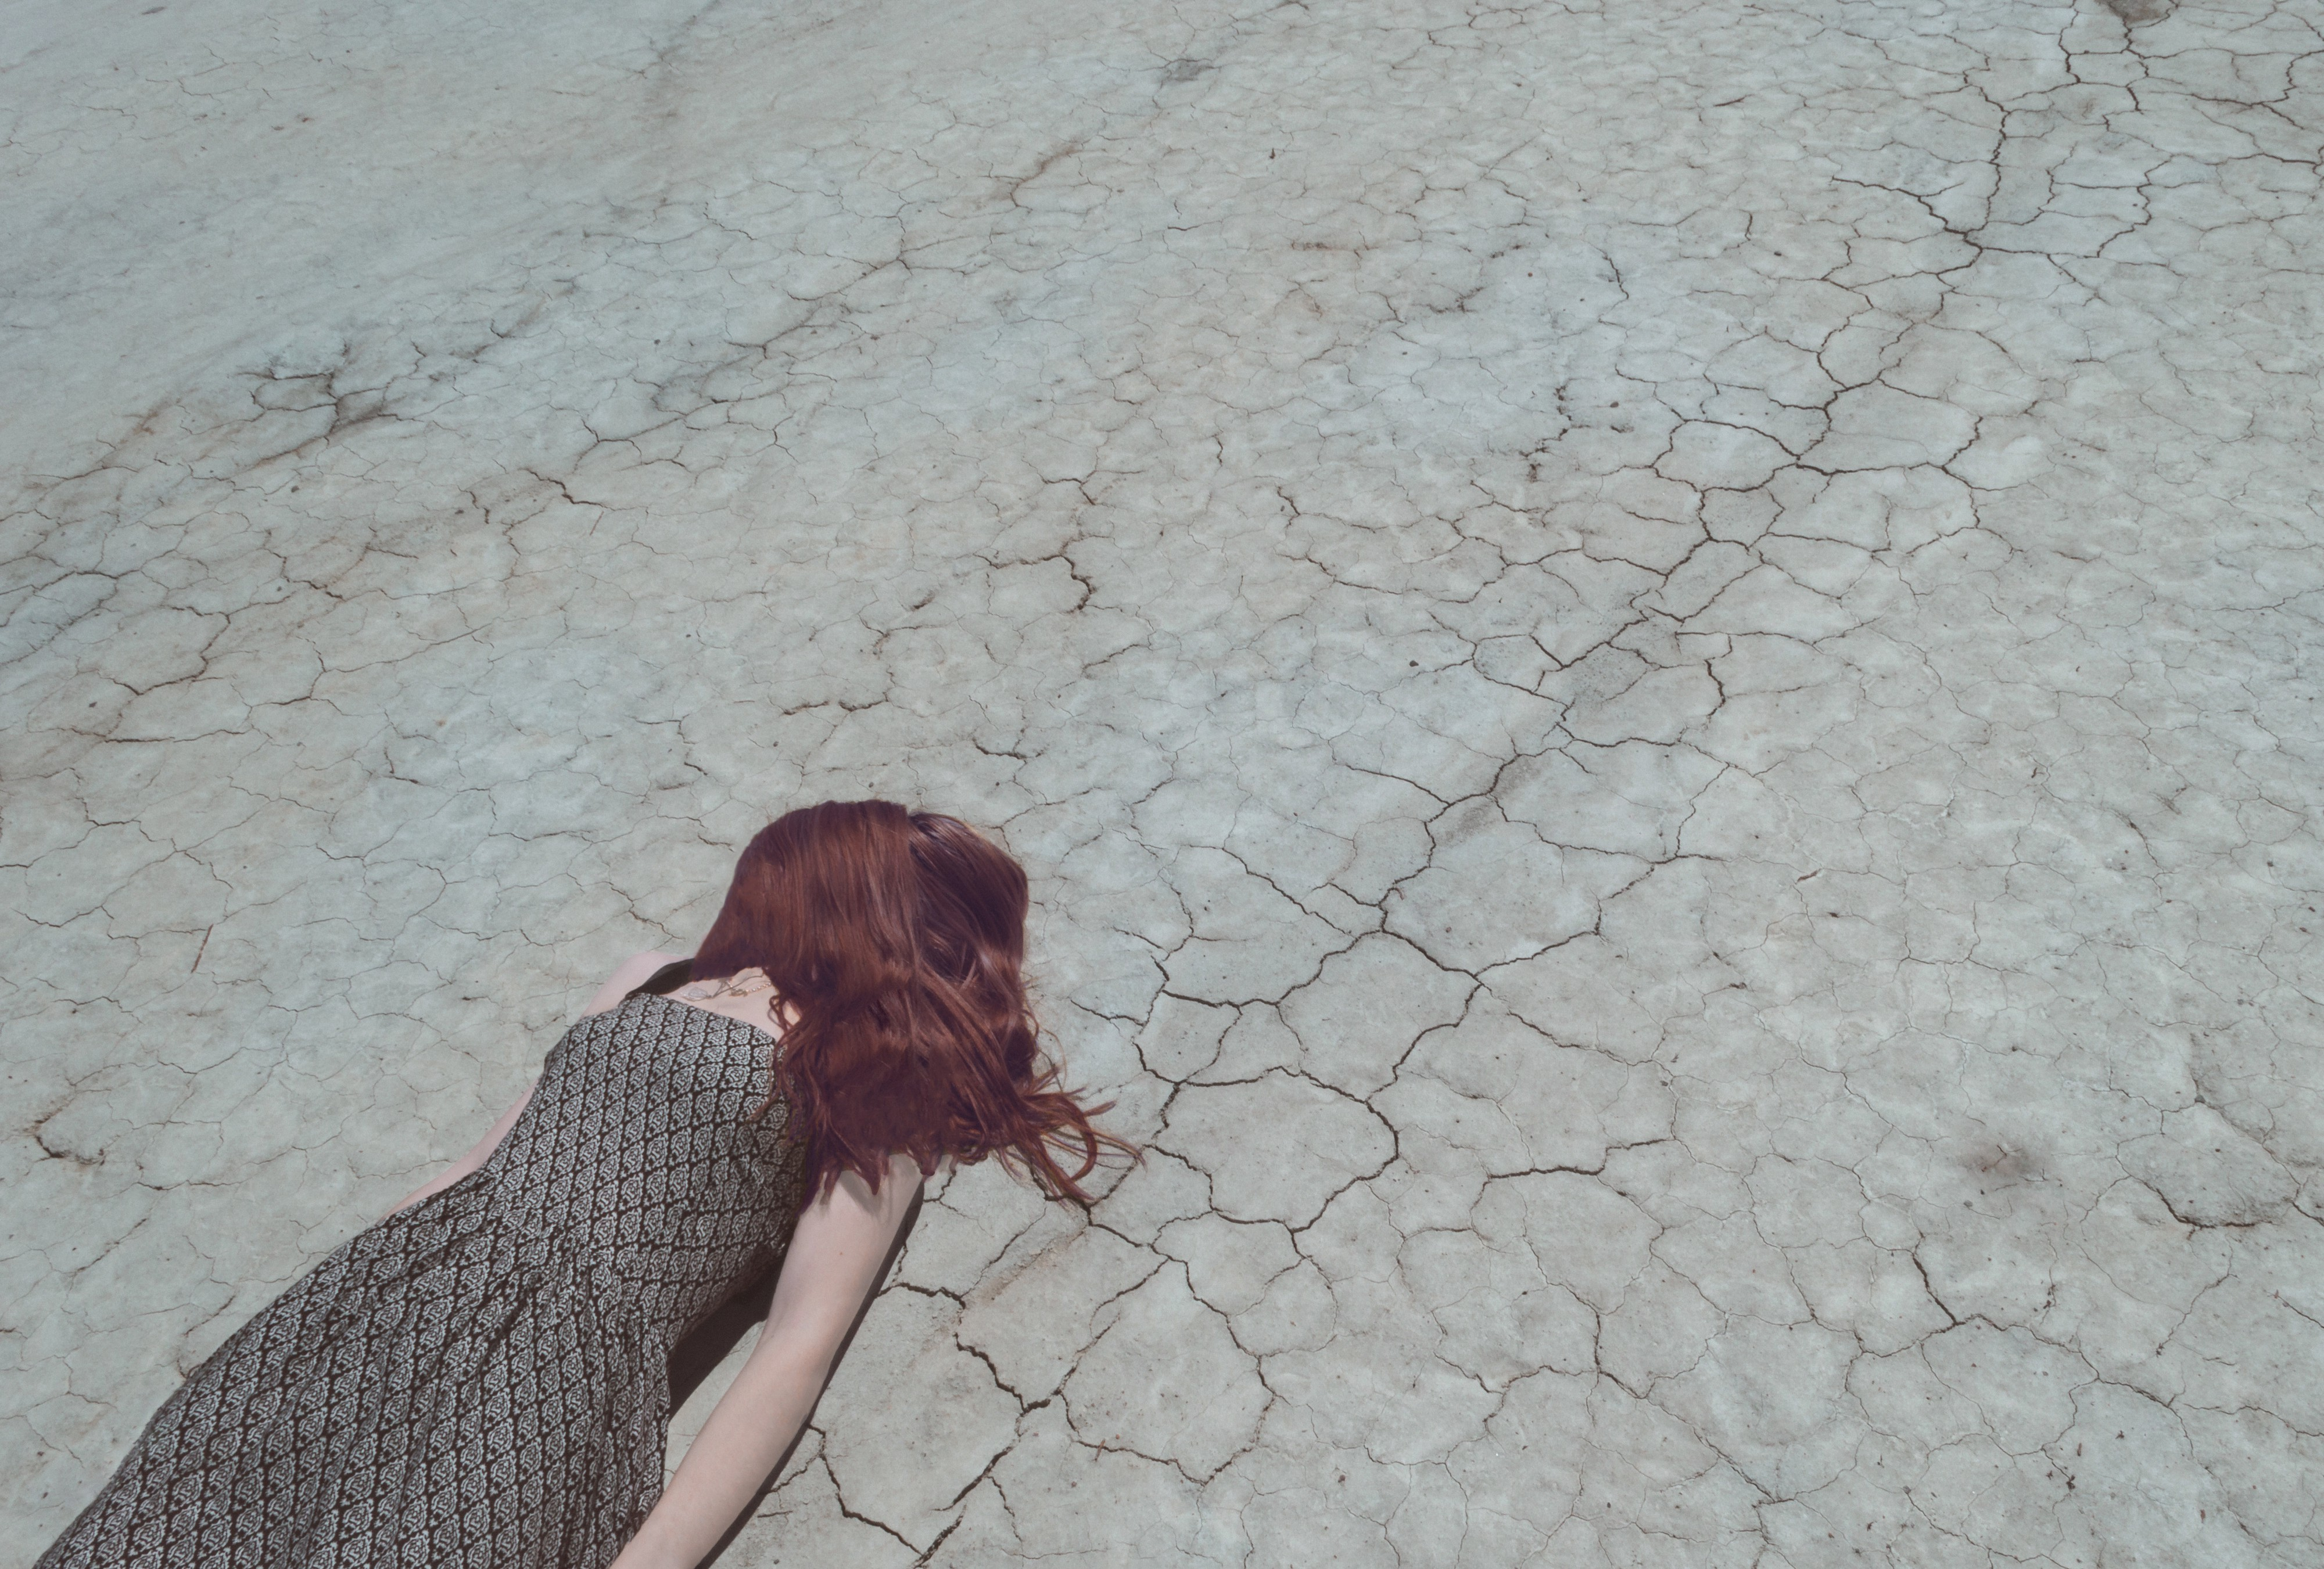 Woman with hair covering her face lying on dry, cracked ground